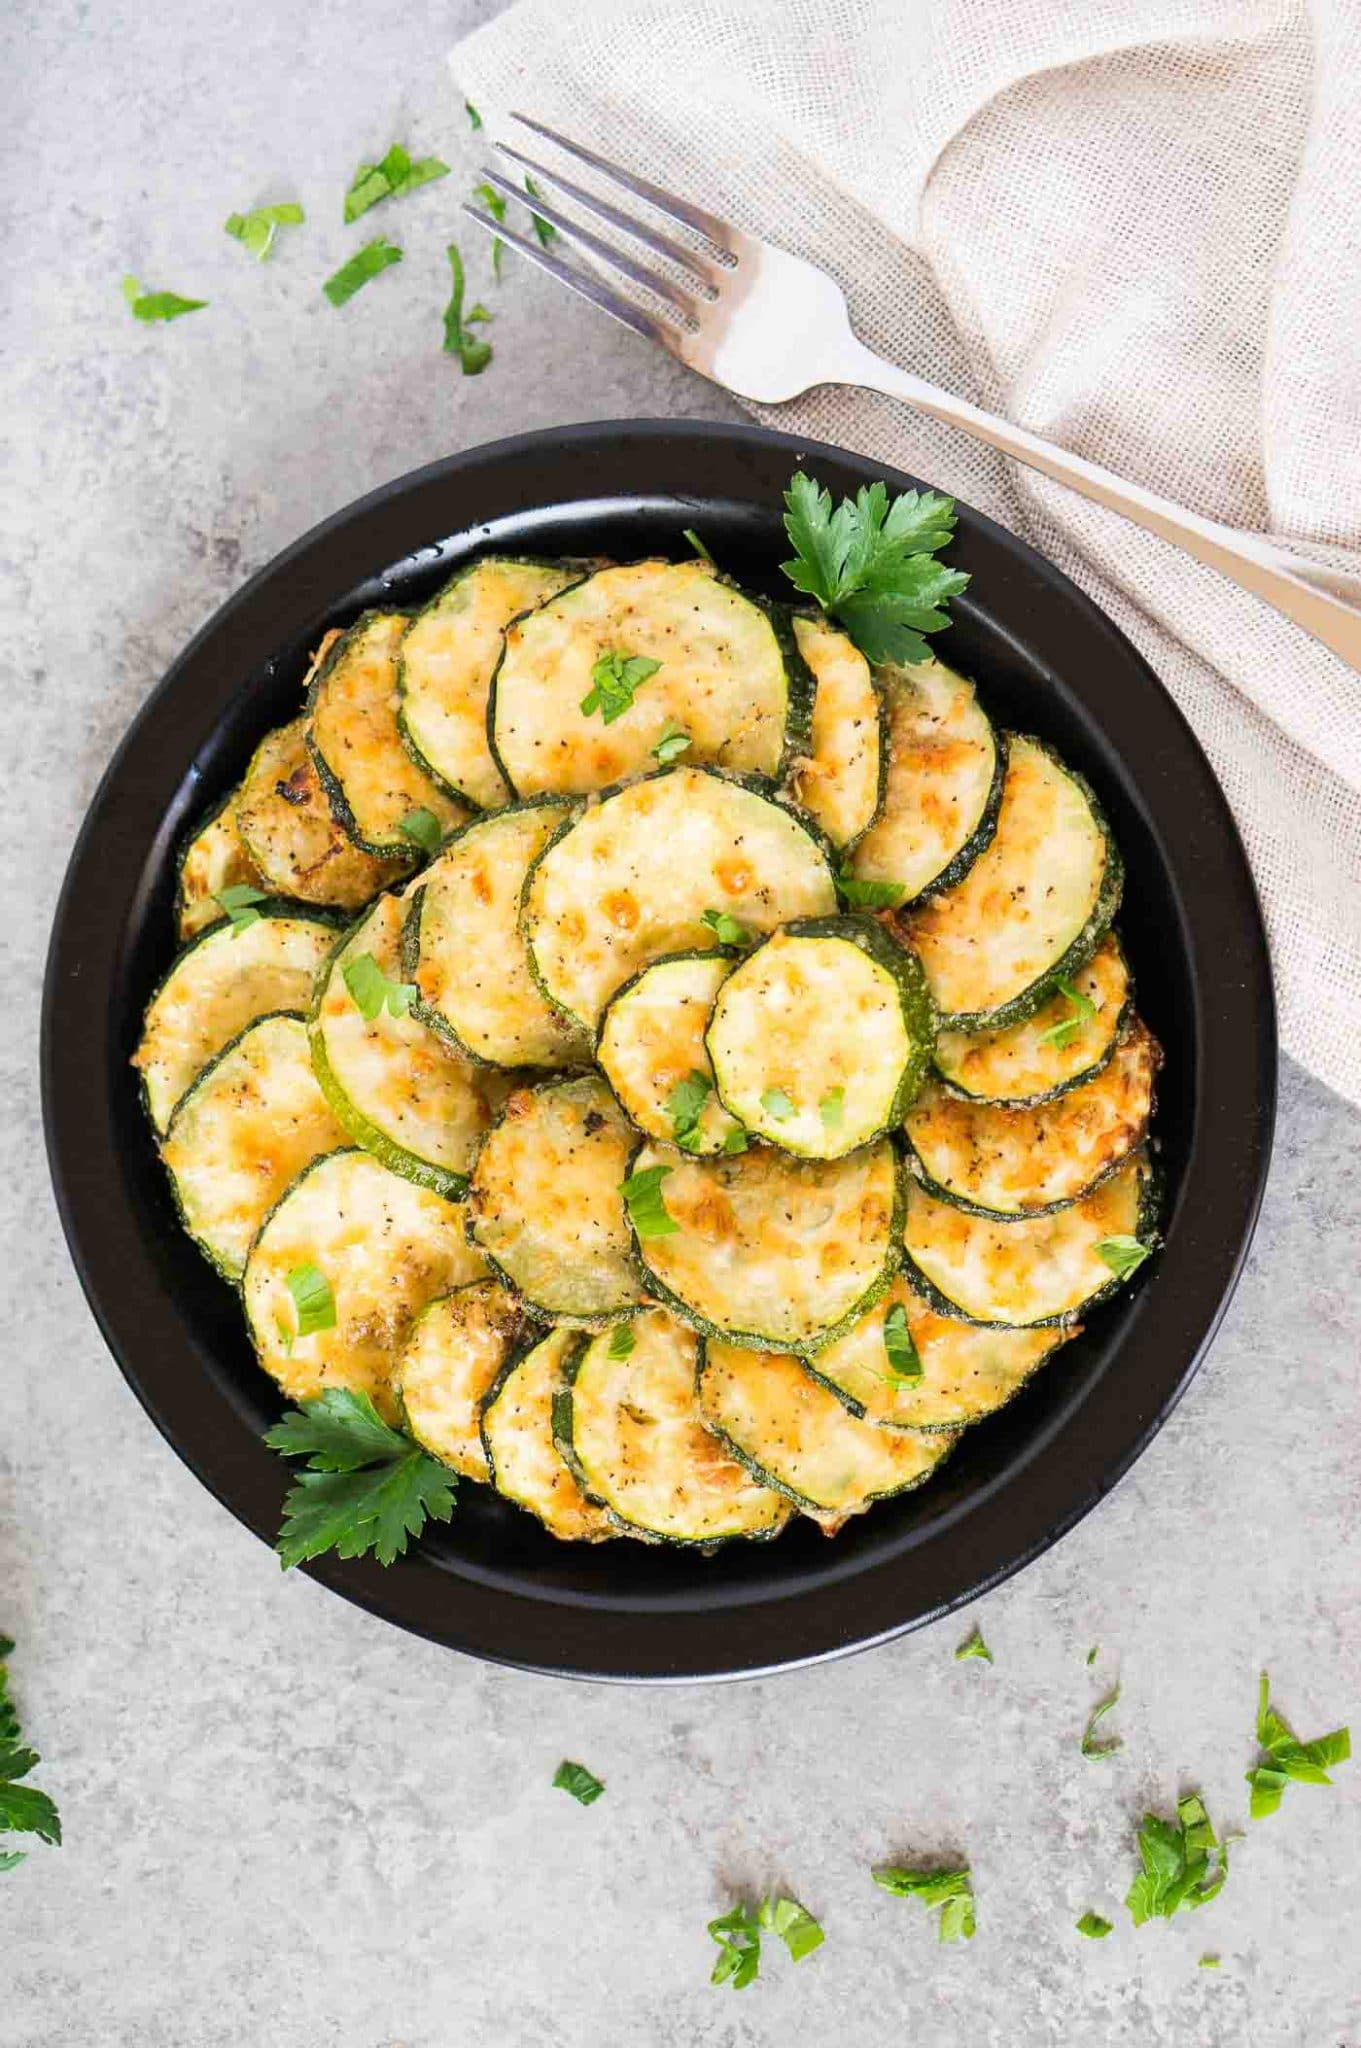 roasted zucchini slices on a black plate